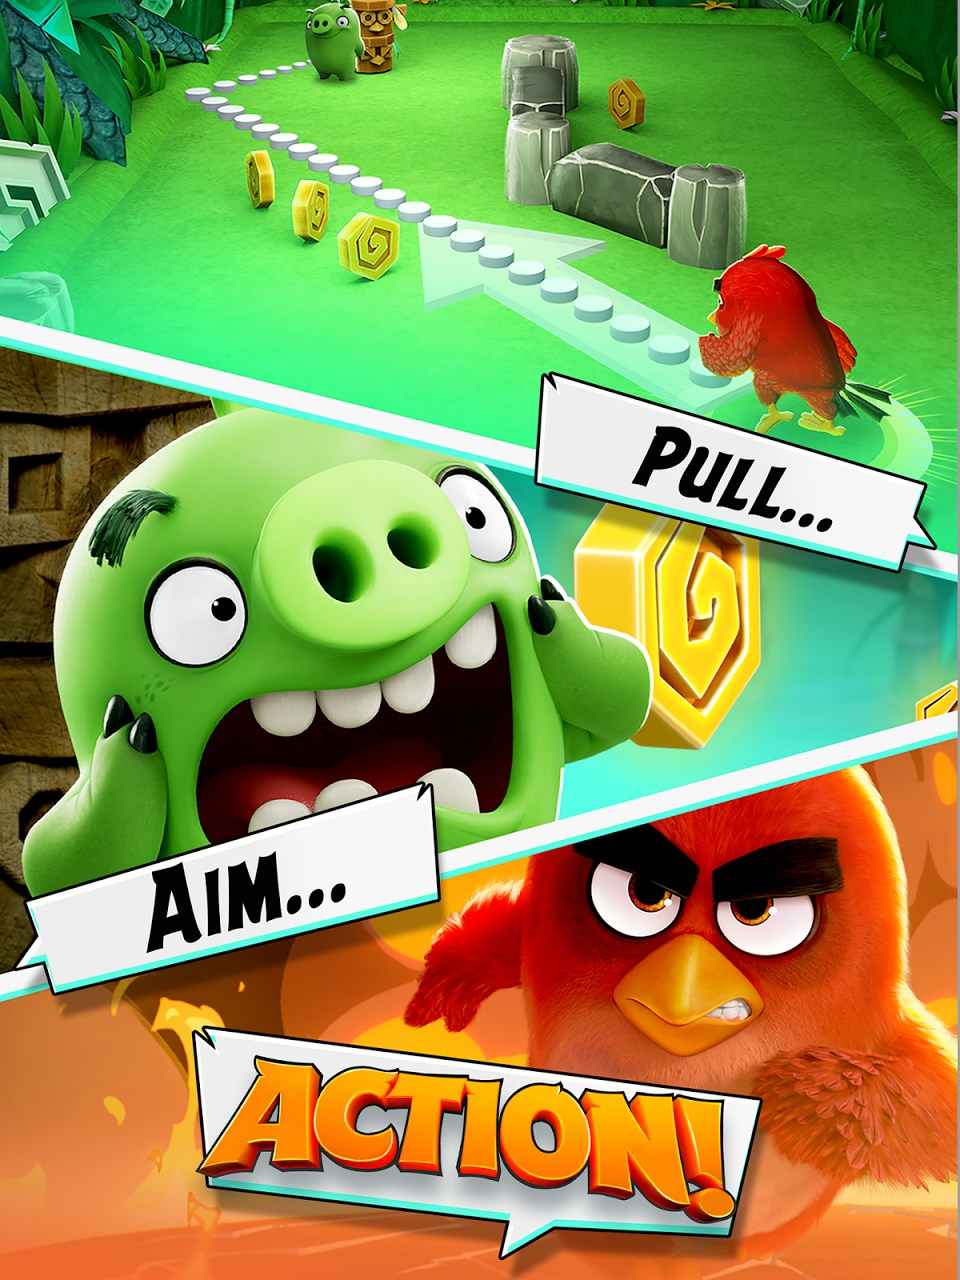 Image Result For Angry Birds Games Download